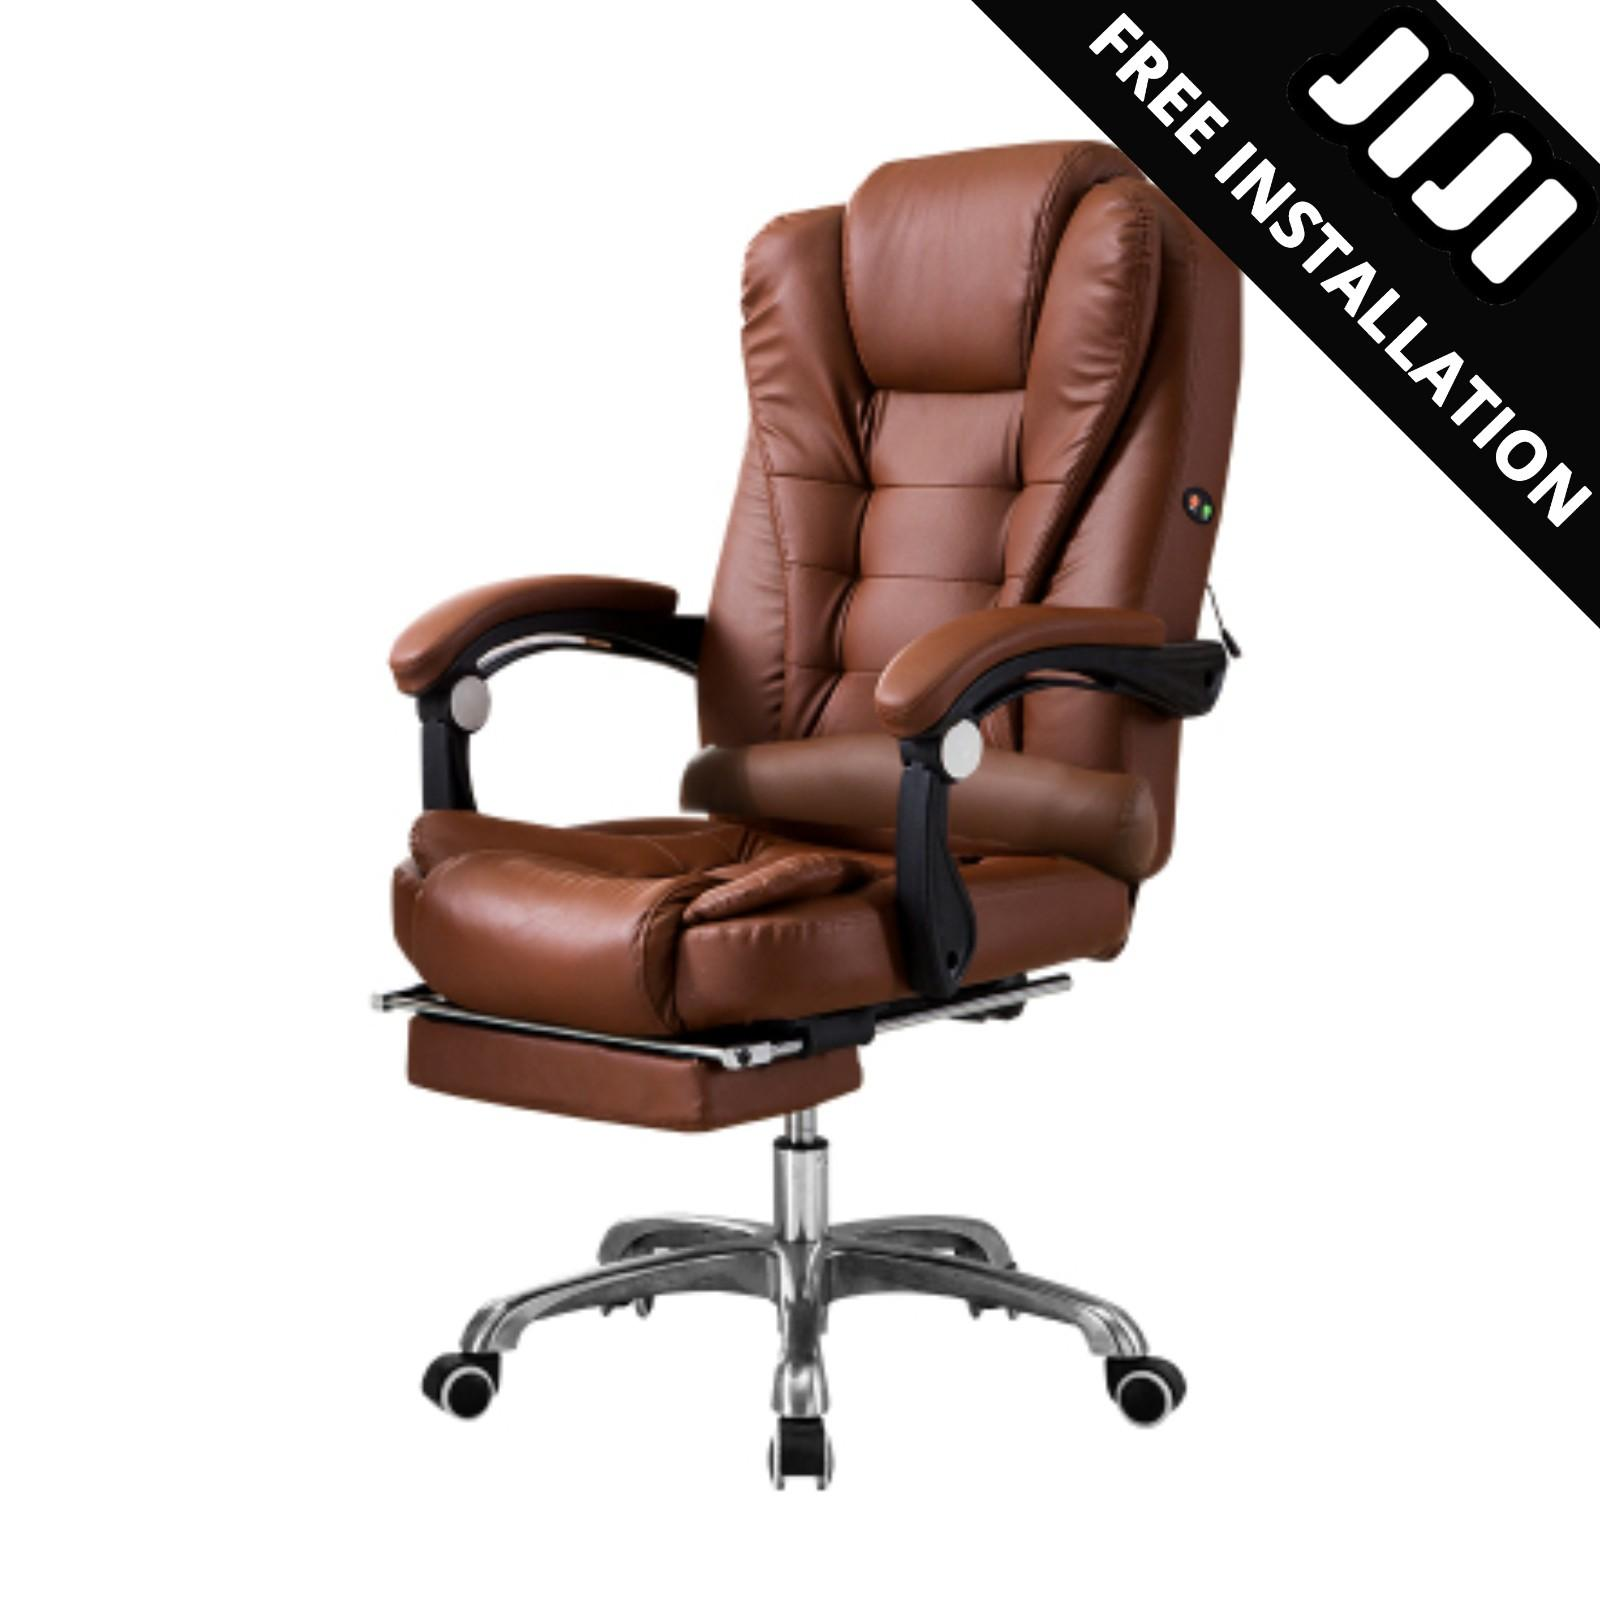 JIJI BOSS Office Chair With Legrest & Massage Functions (Free Installation) - Home Office Chairs / Supreme ★Leather ★Office Furniture ★Grand ★Ergonomic ★Quality / Free 12 Months Warranty (SG)